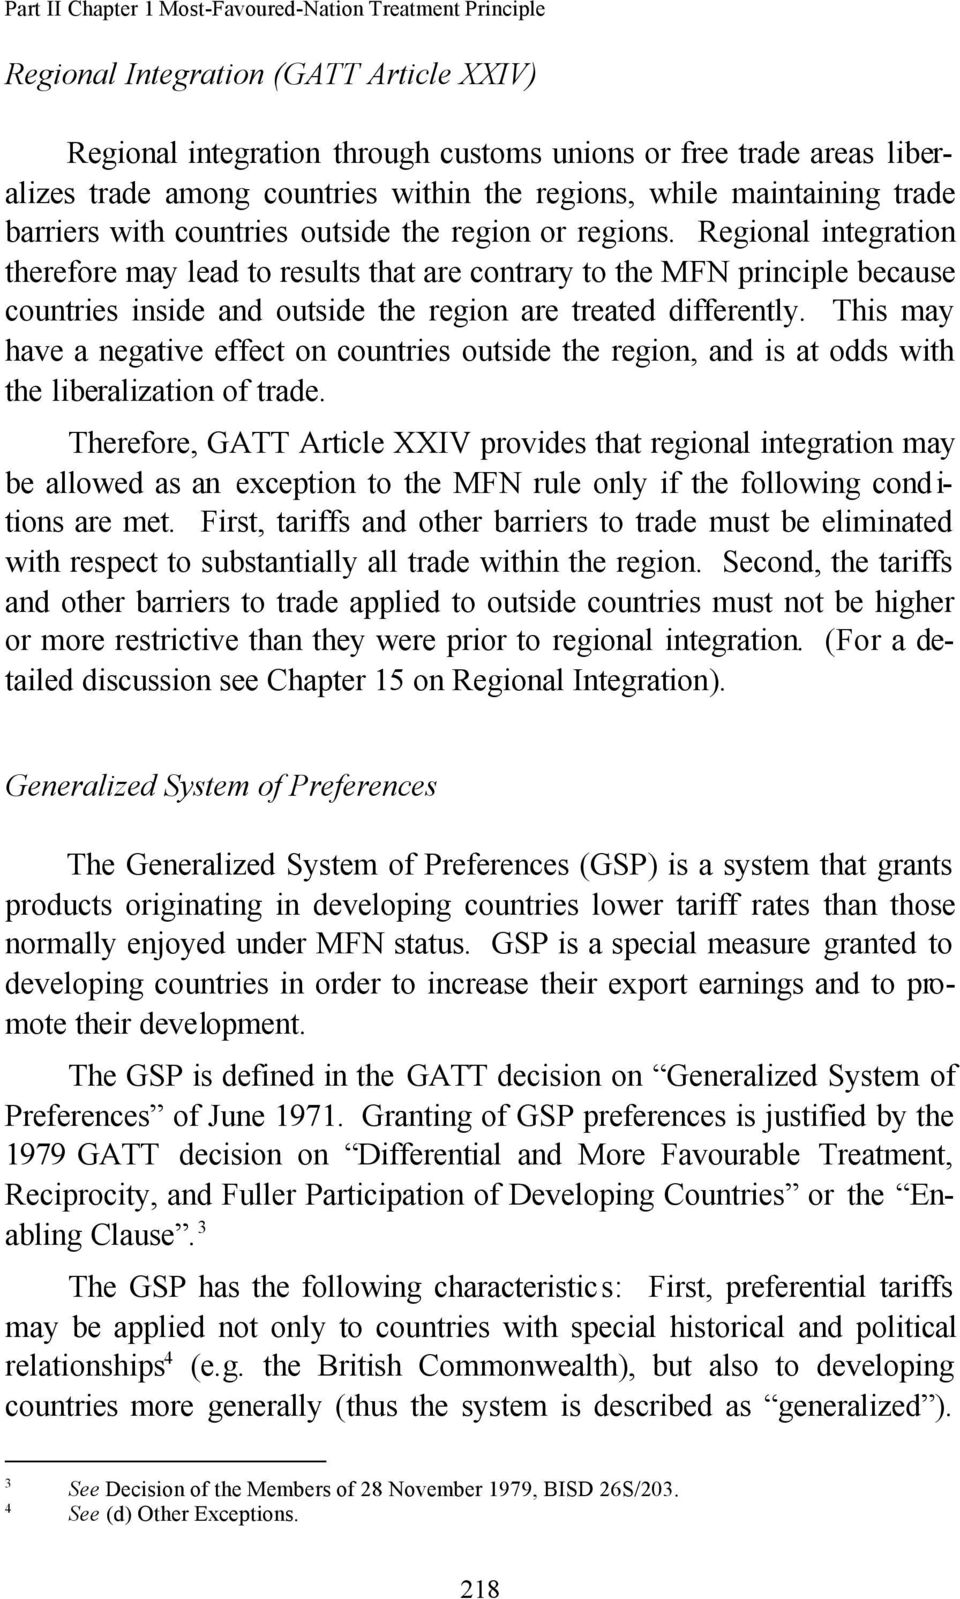 Regional integration therefore may lead to results that are contrary to the MFN principle because countries inside and outside the region are treated differently.